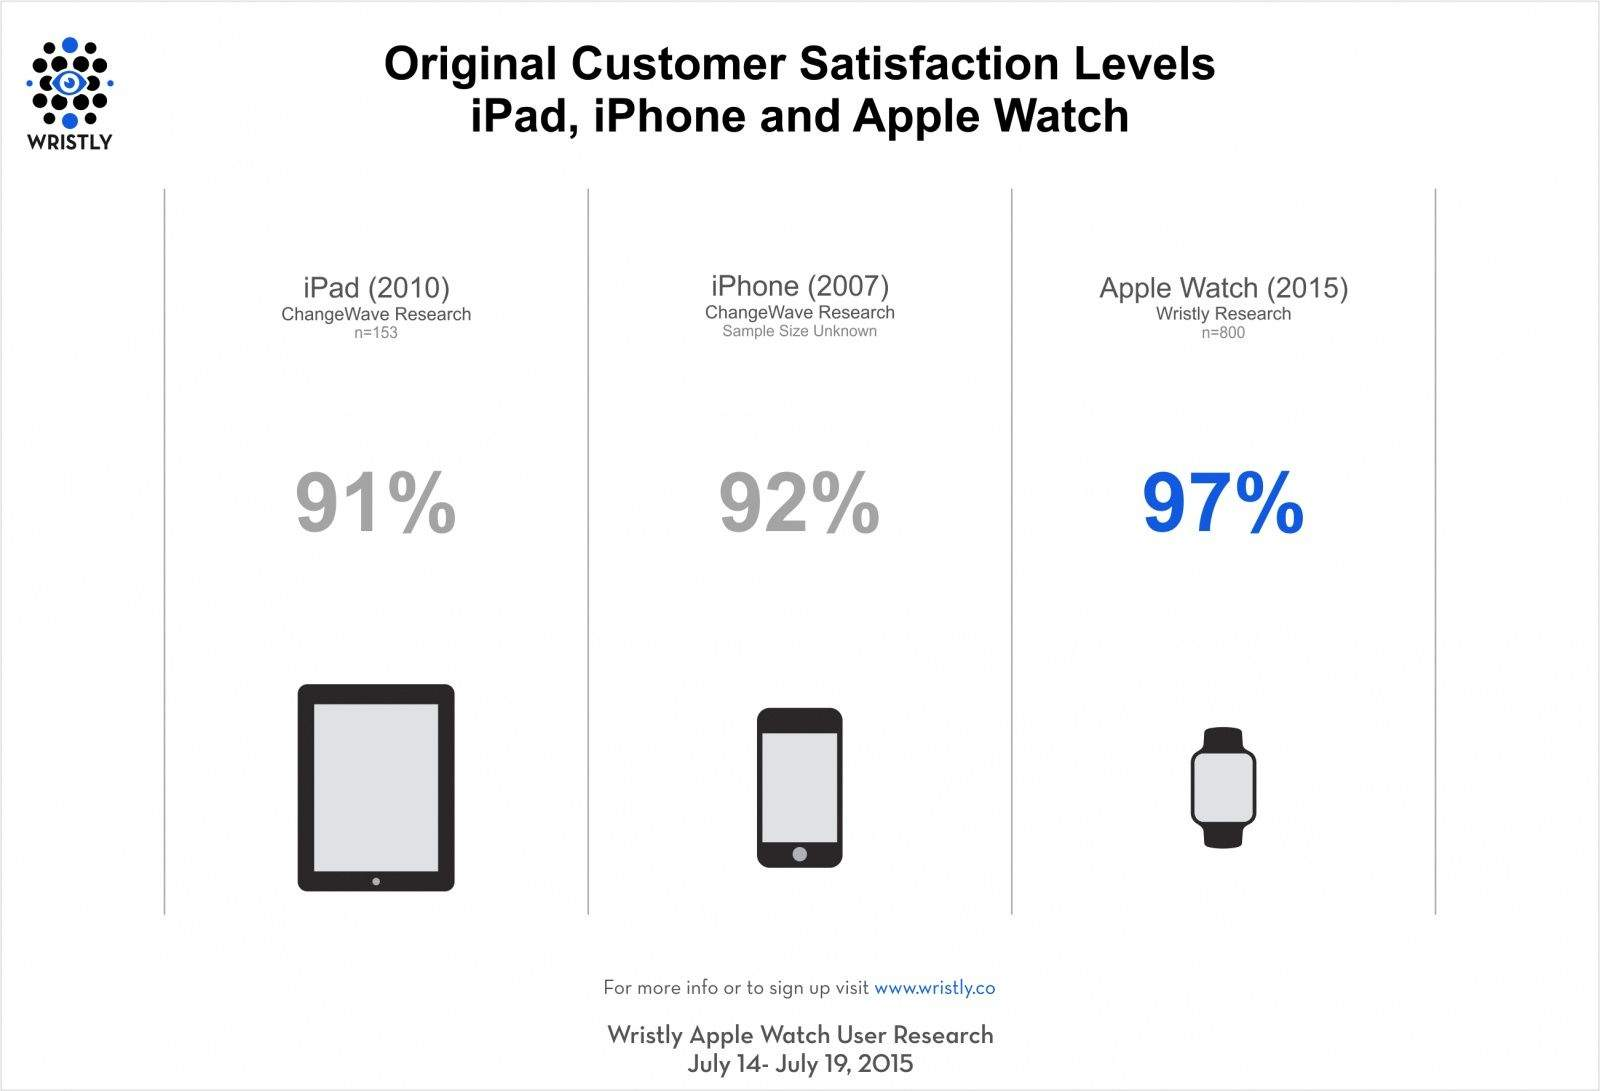 Apple Watch customers are some of the most satisfied people around.